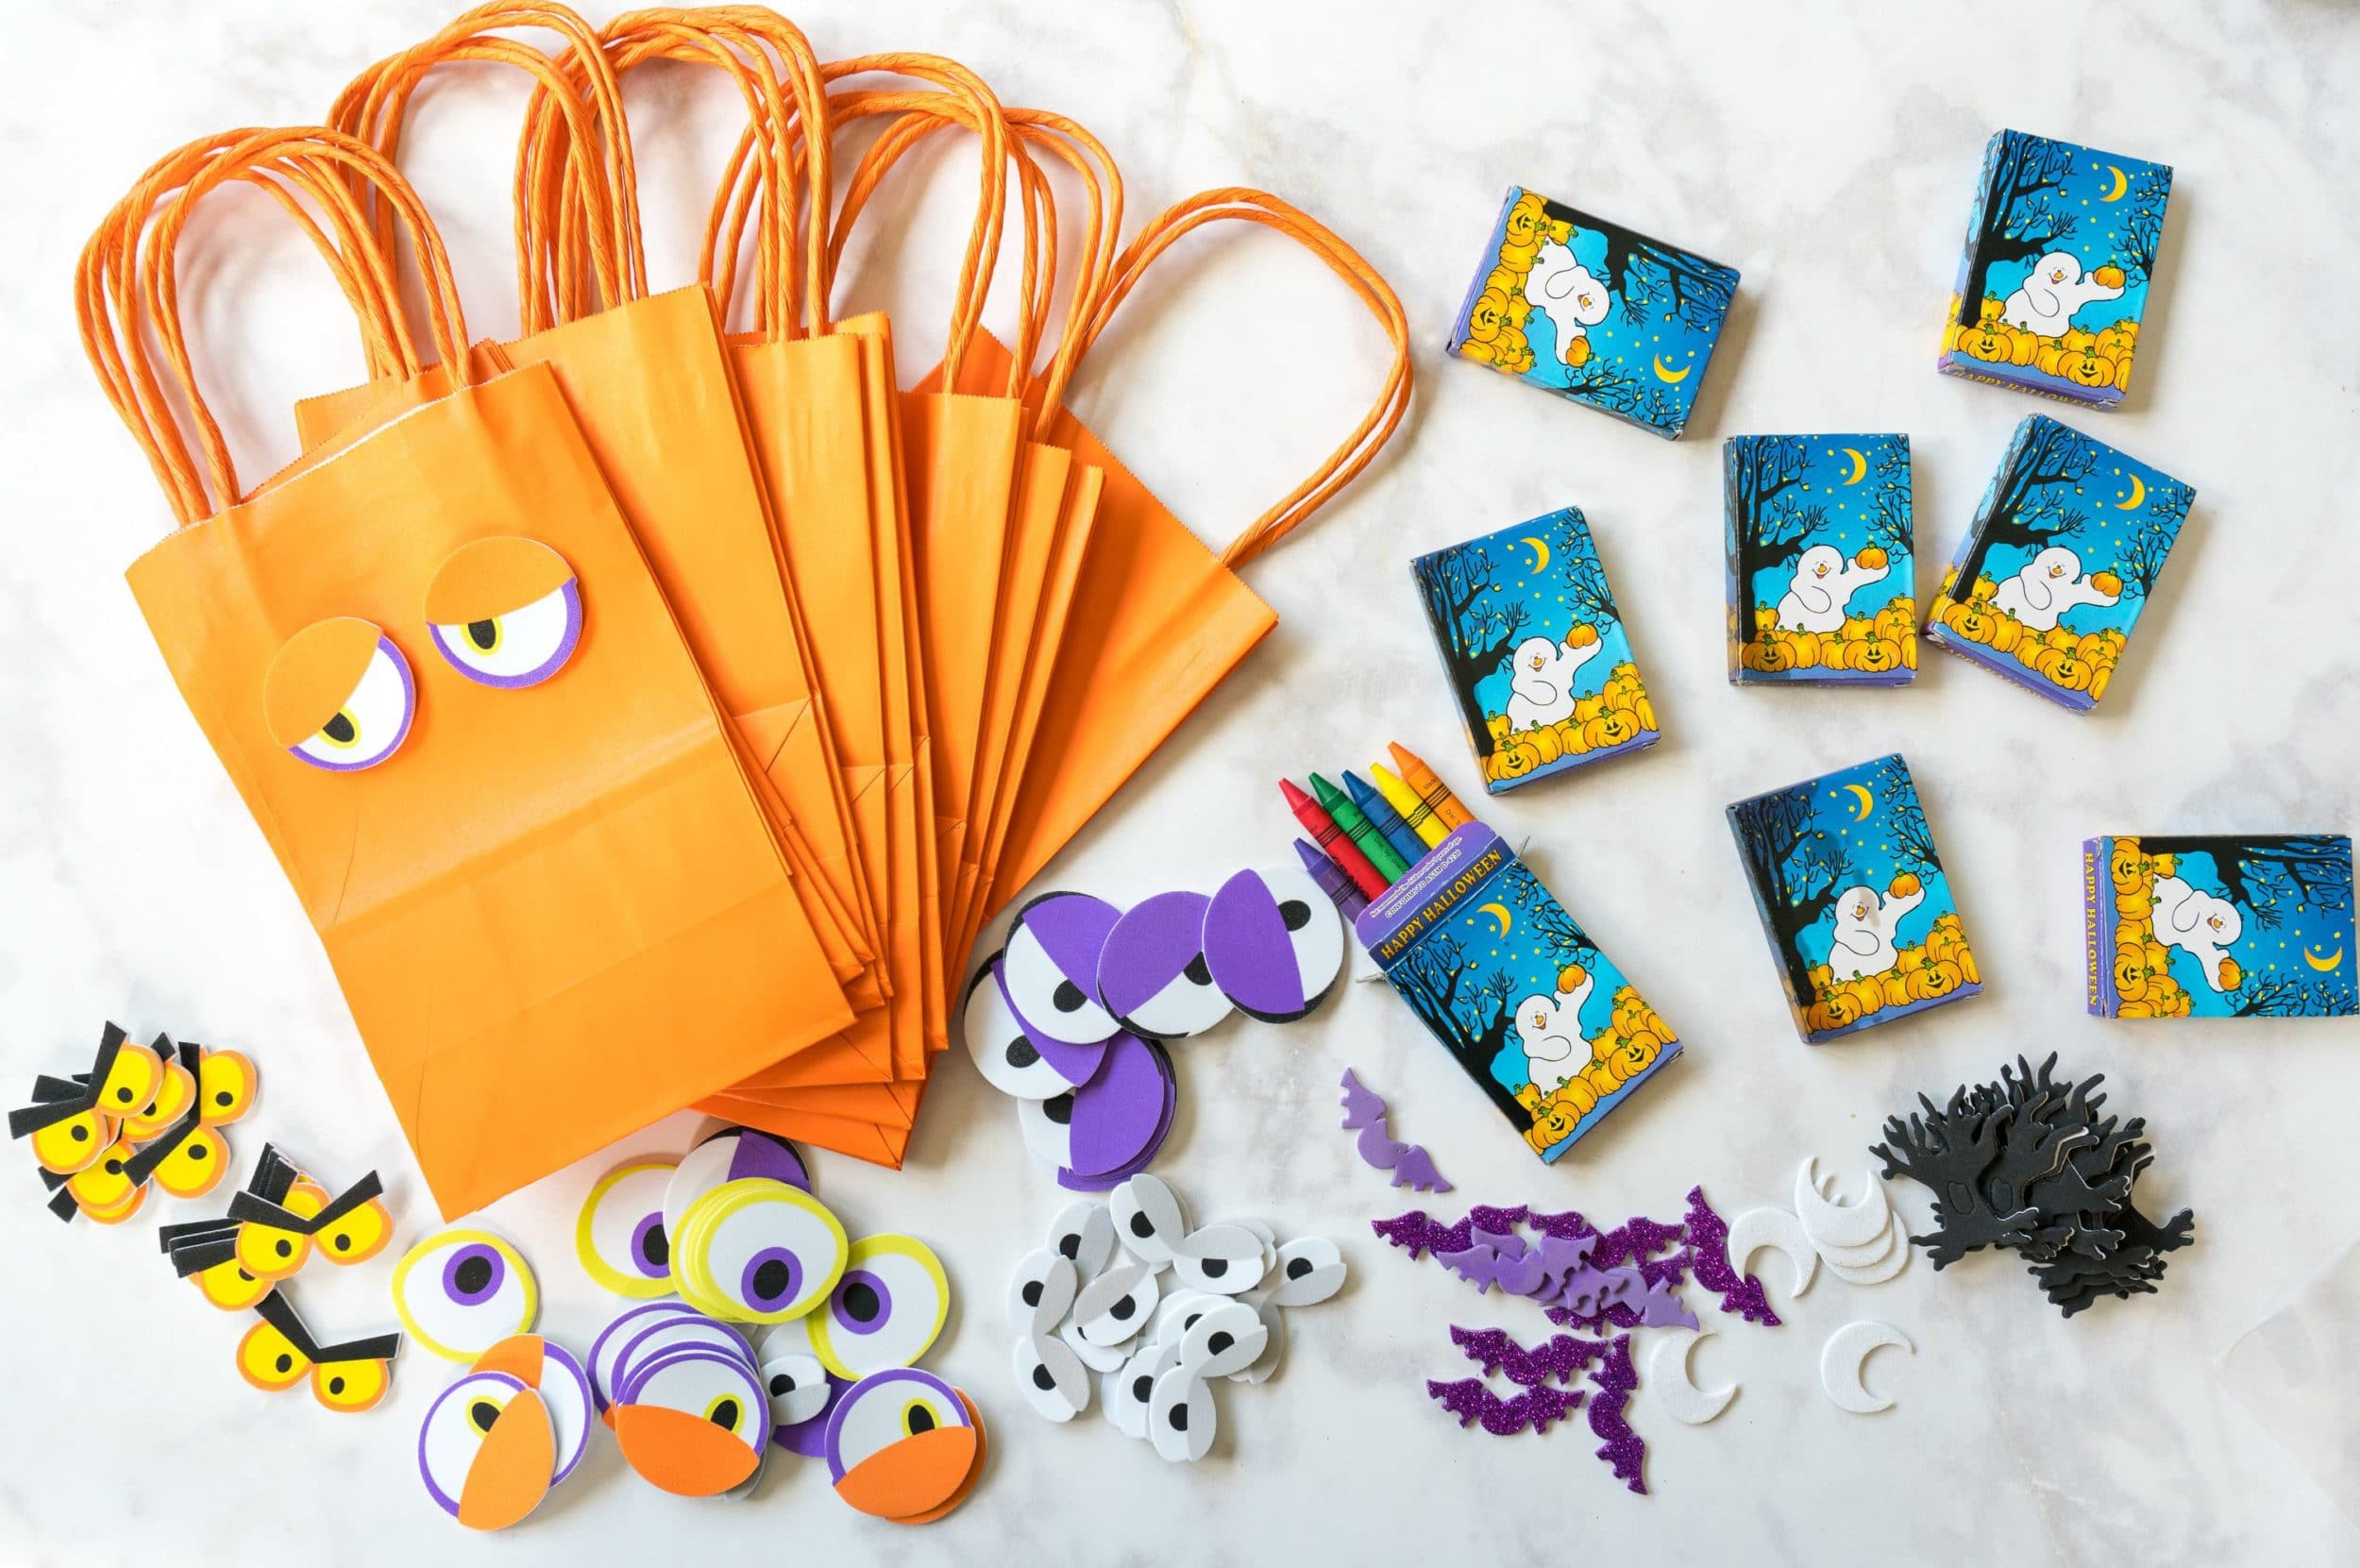 A good activity at a toddler Halloween party is to let them decorate their own favor bags.